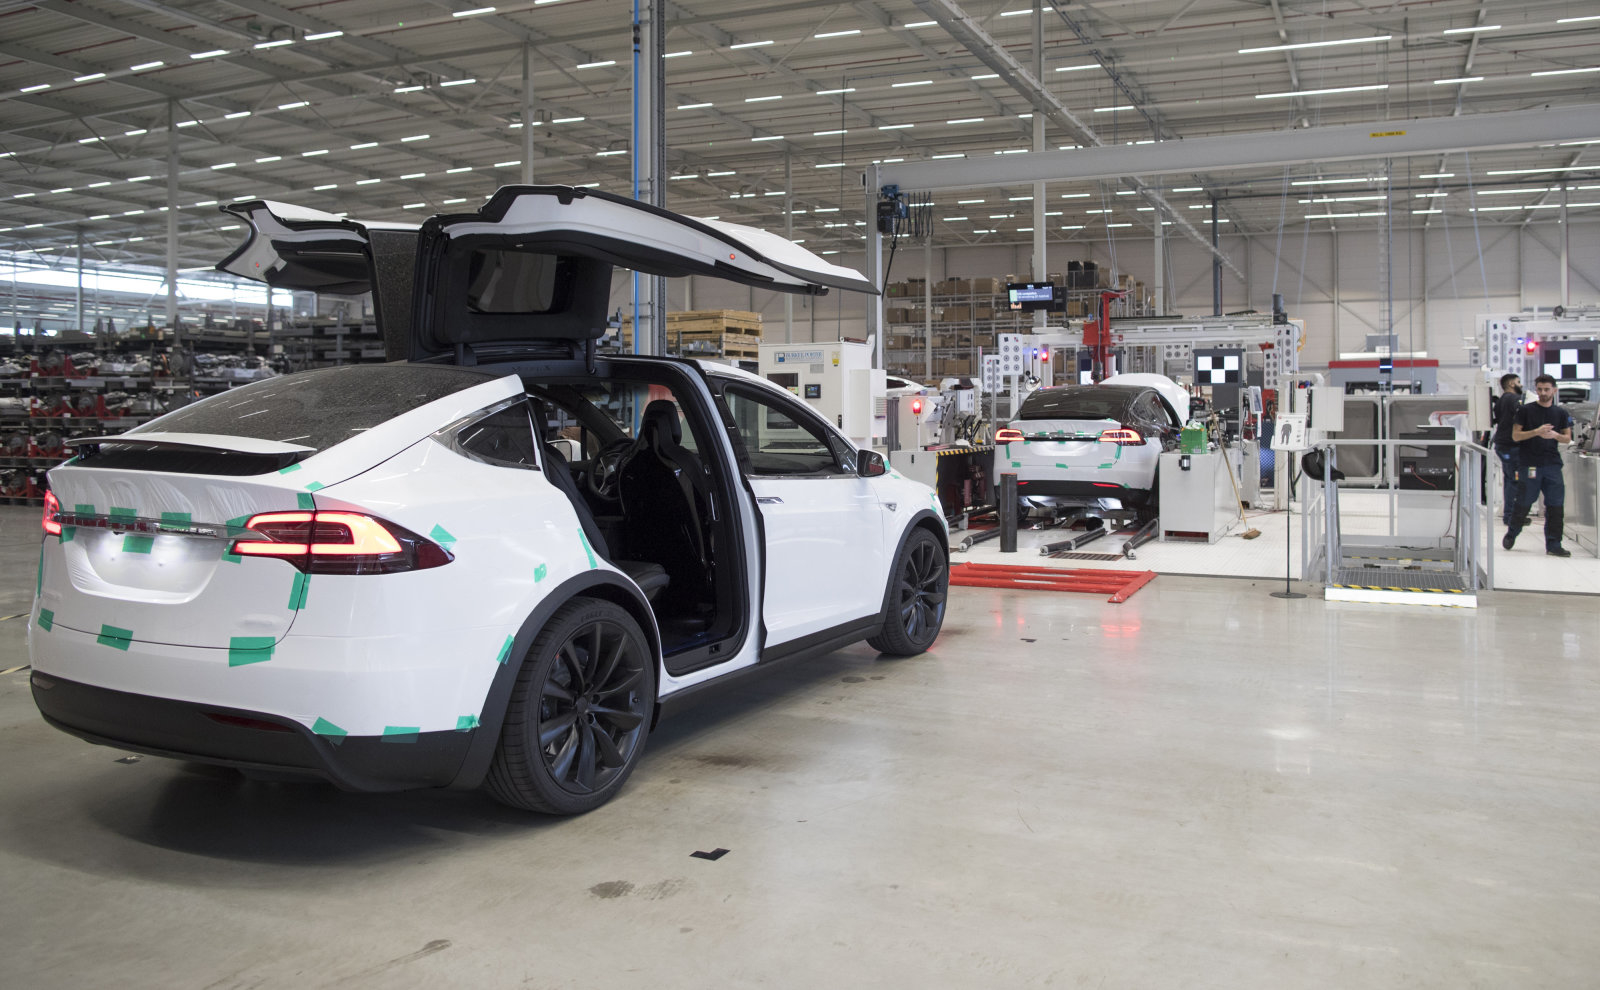 The rear gull wing doors of a Tesla Model X sports utility vehicle (SUV) sit open during assembly for the European market at the Tesla Motors Inc. factory in Tilburg, Netherlands, on Friday, Dec. 9, 2016. A boom in electric vehicles made by the likes of Tesla could erode as much as 10 percent of global gasoline demand by 2035, according to the oil industry consultant Wood Mackenzie Ltd. Photographer: Jasper Juinen/Bloomberg via Getty Images